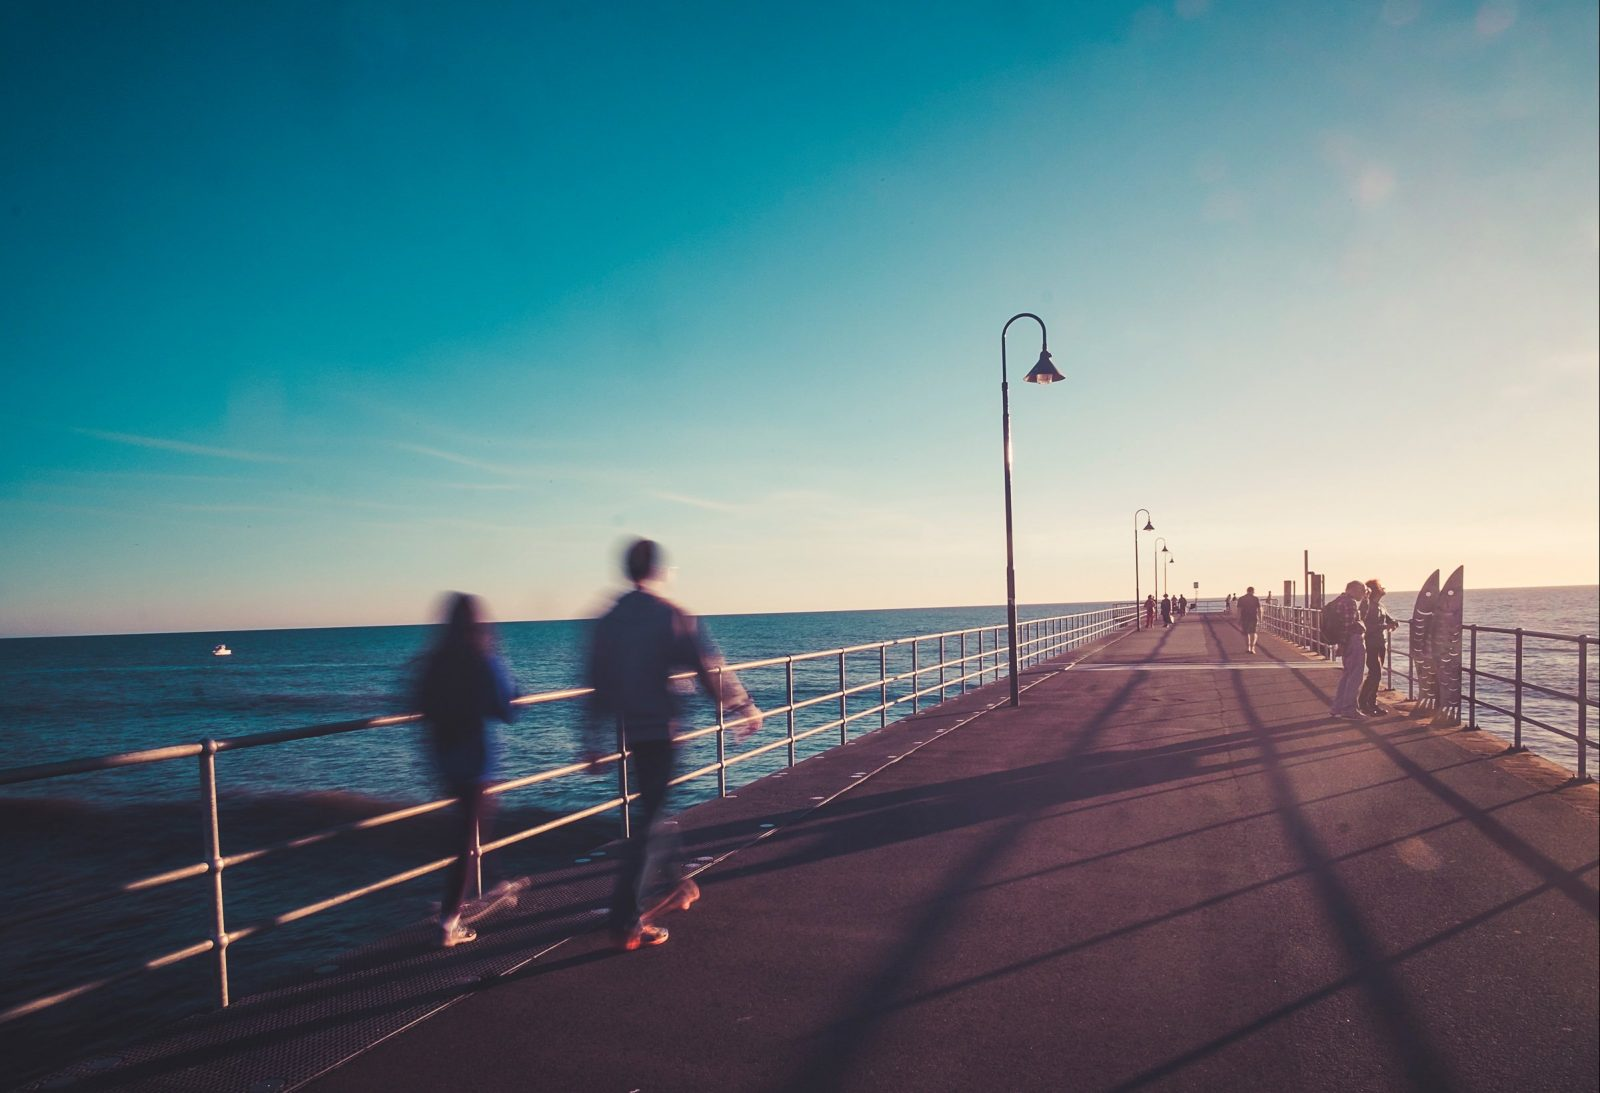 Adelaide Photography Tours